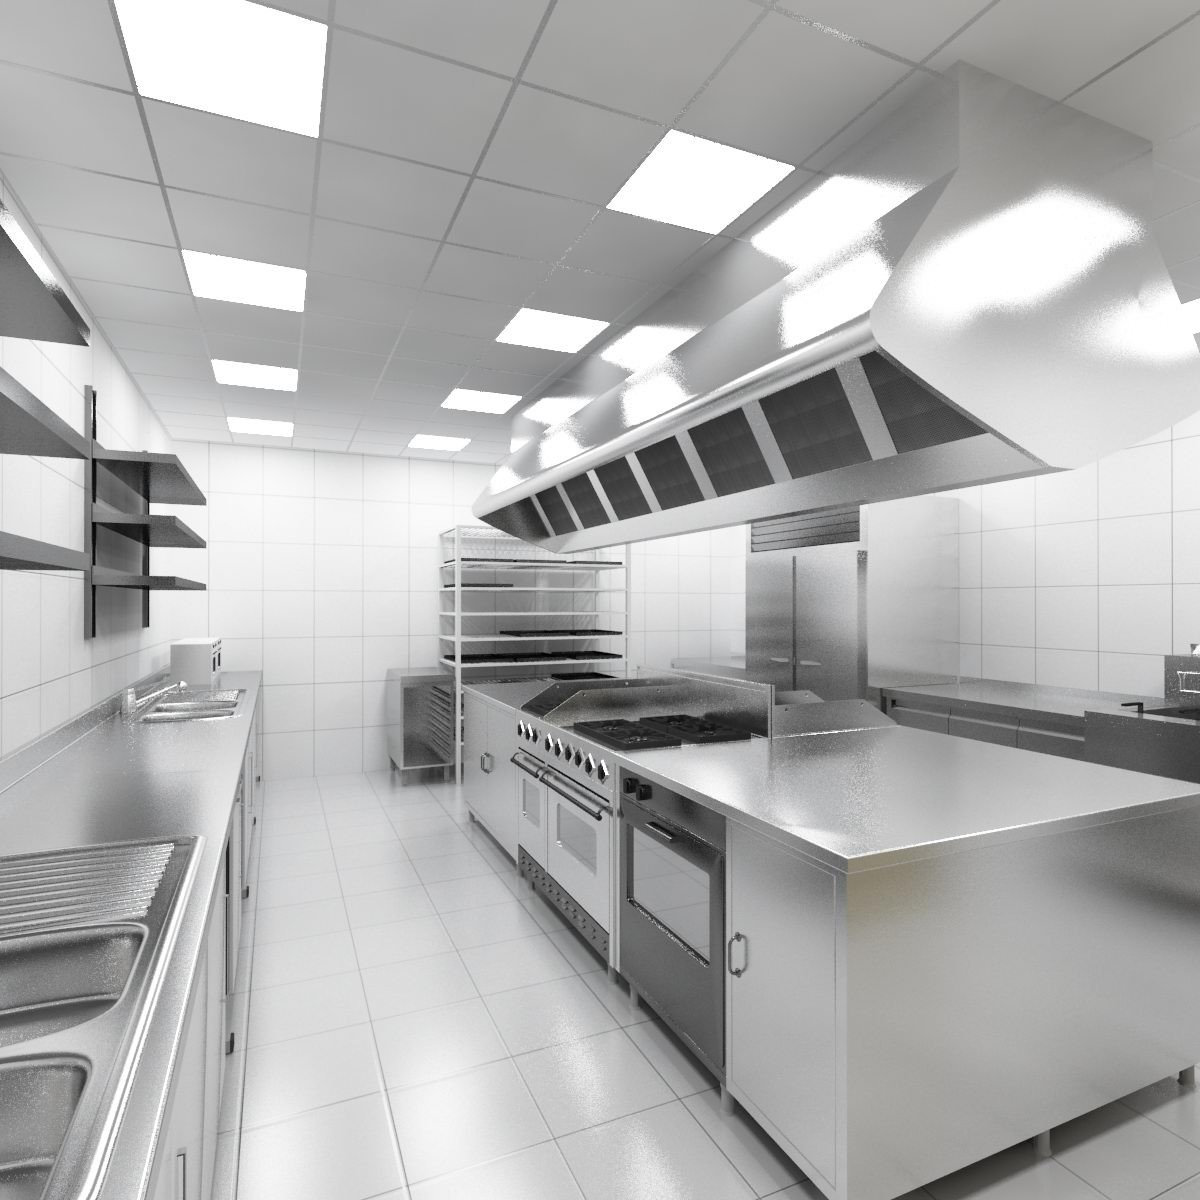 D industrial kitchen model